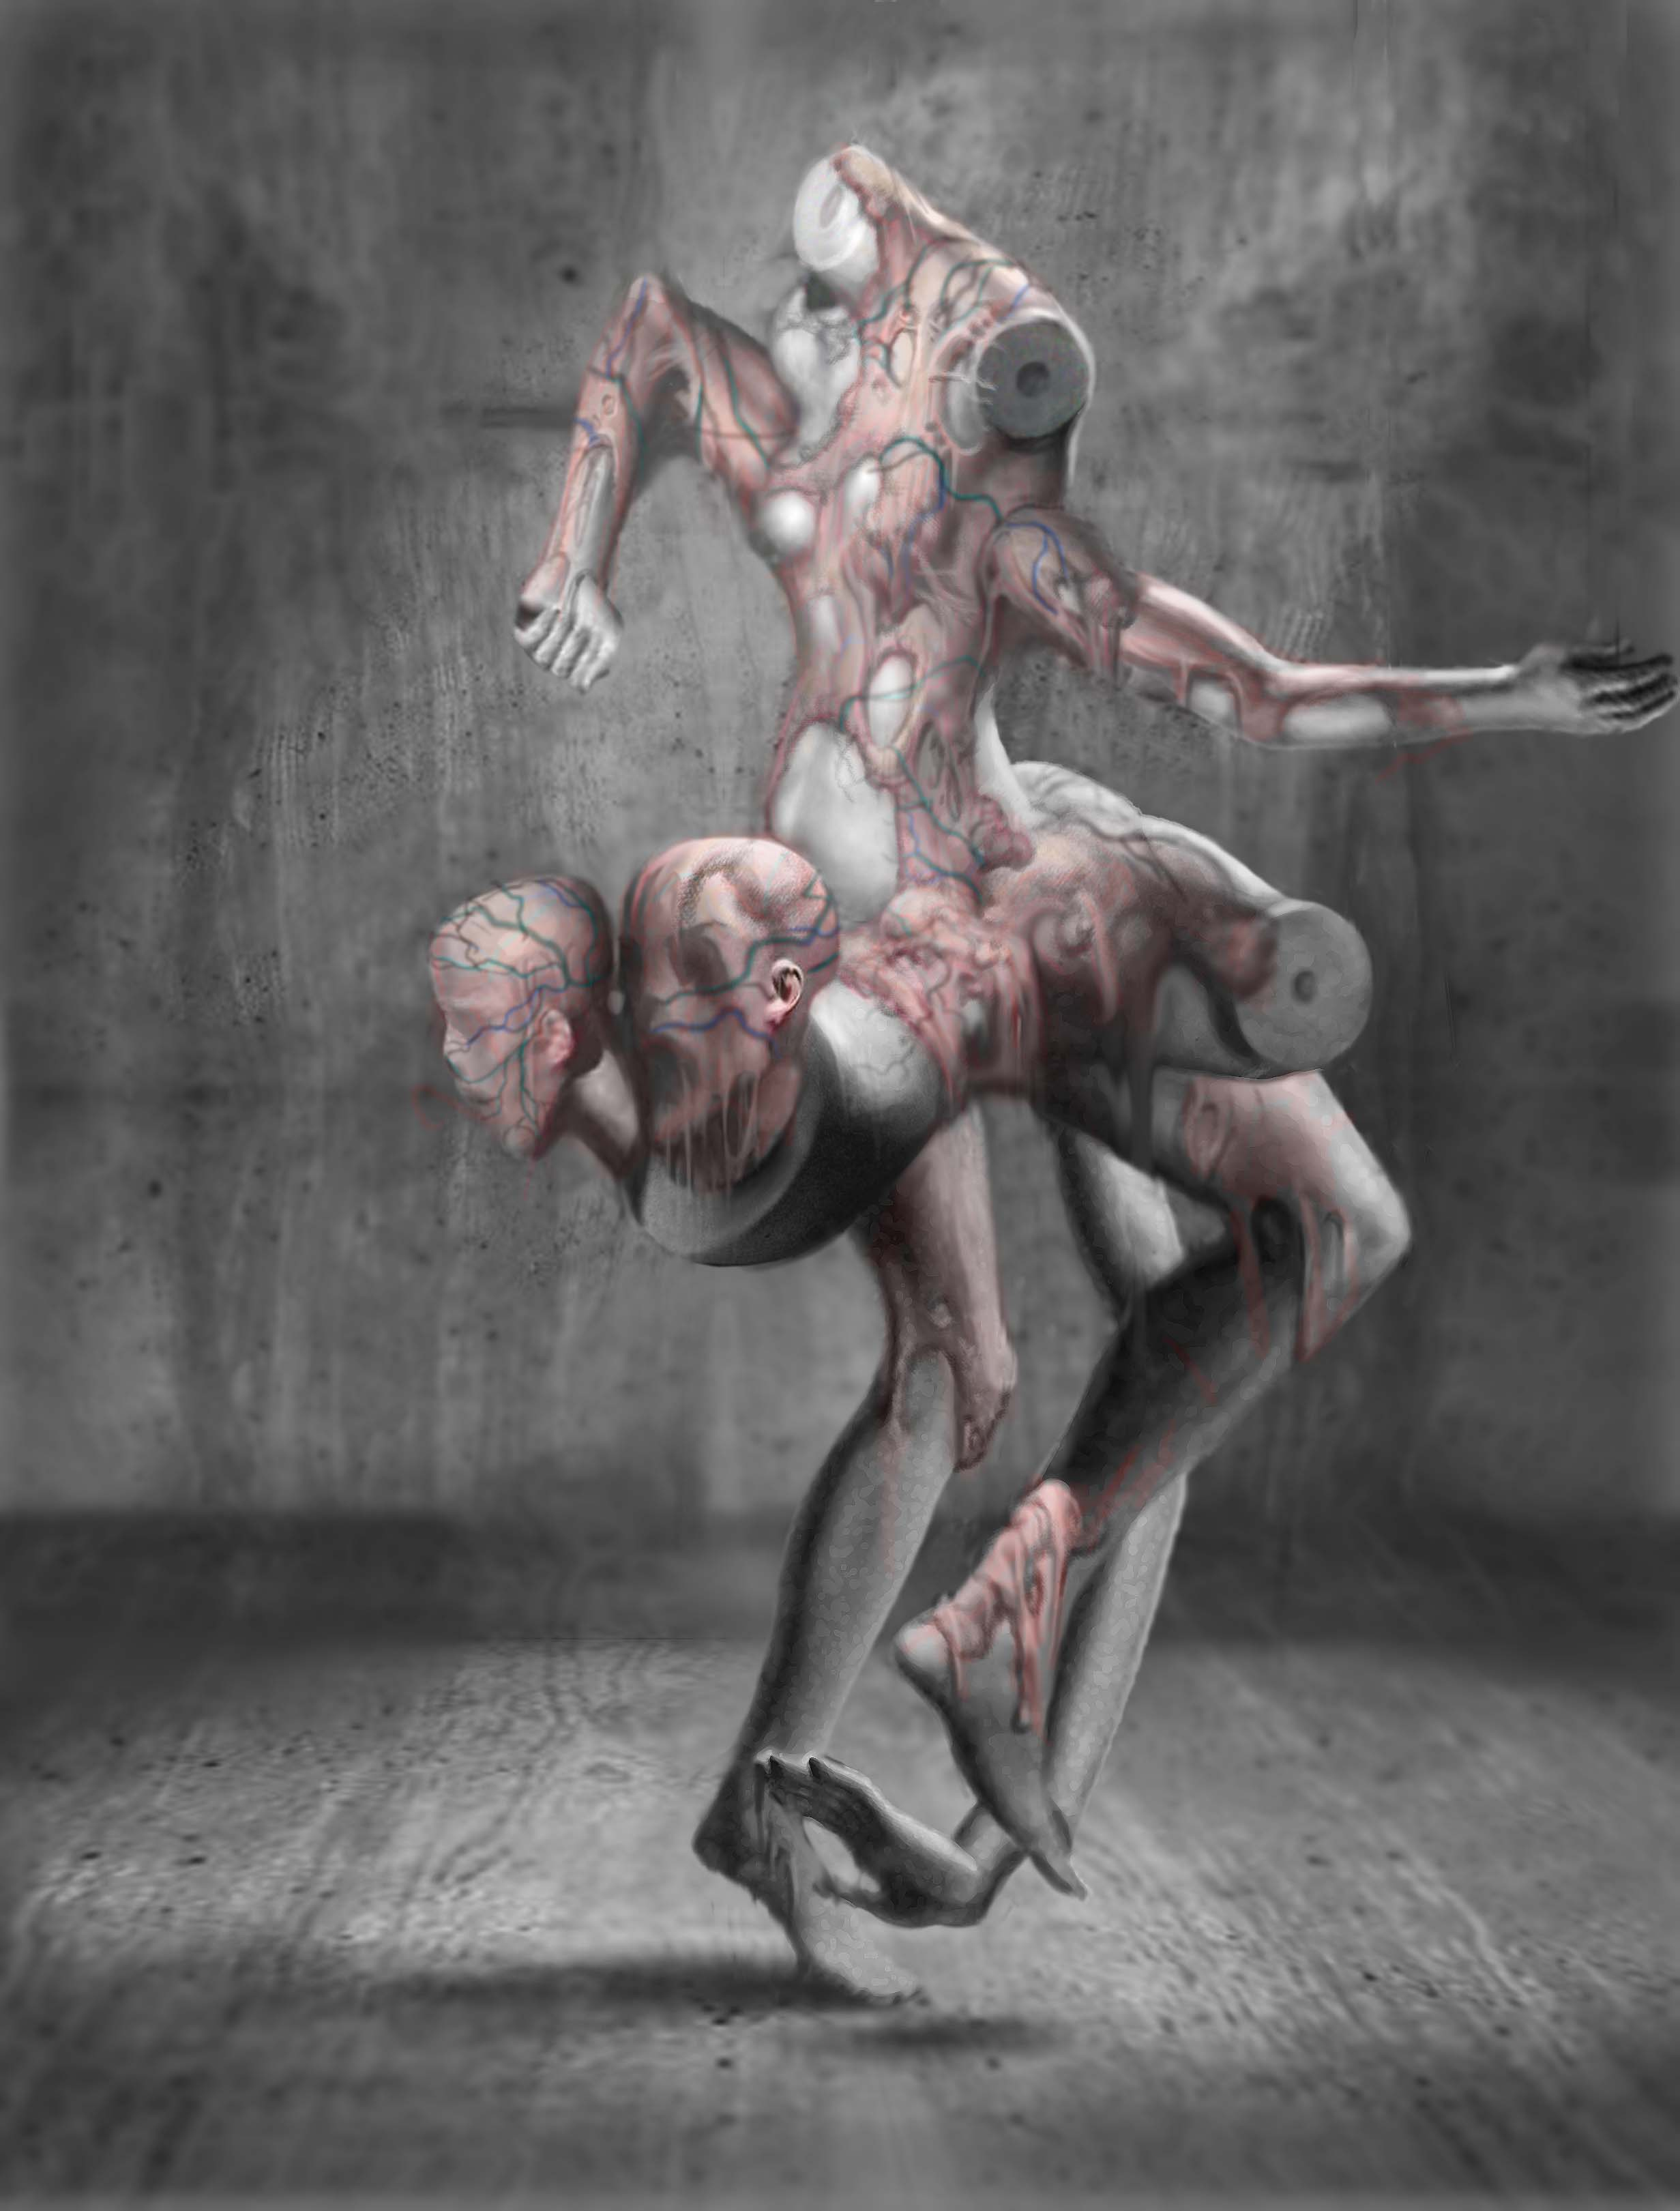 Silent Hill Community View Topic This